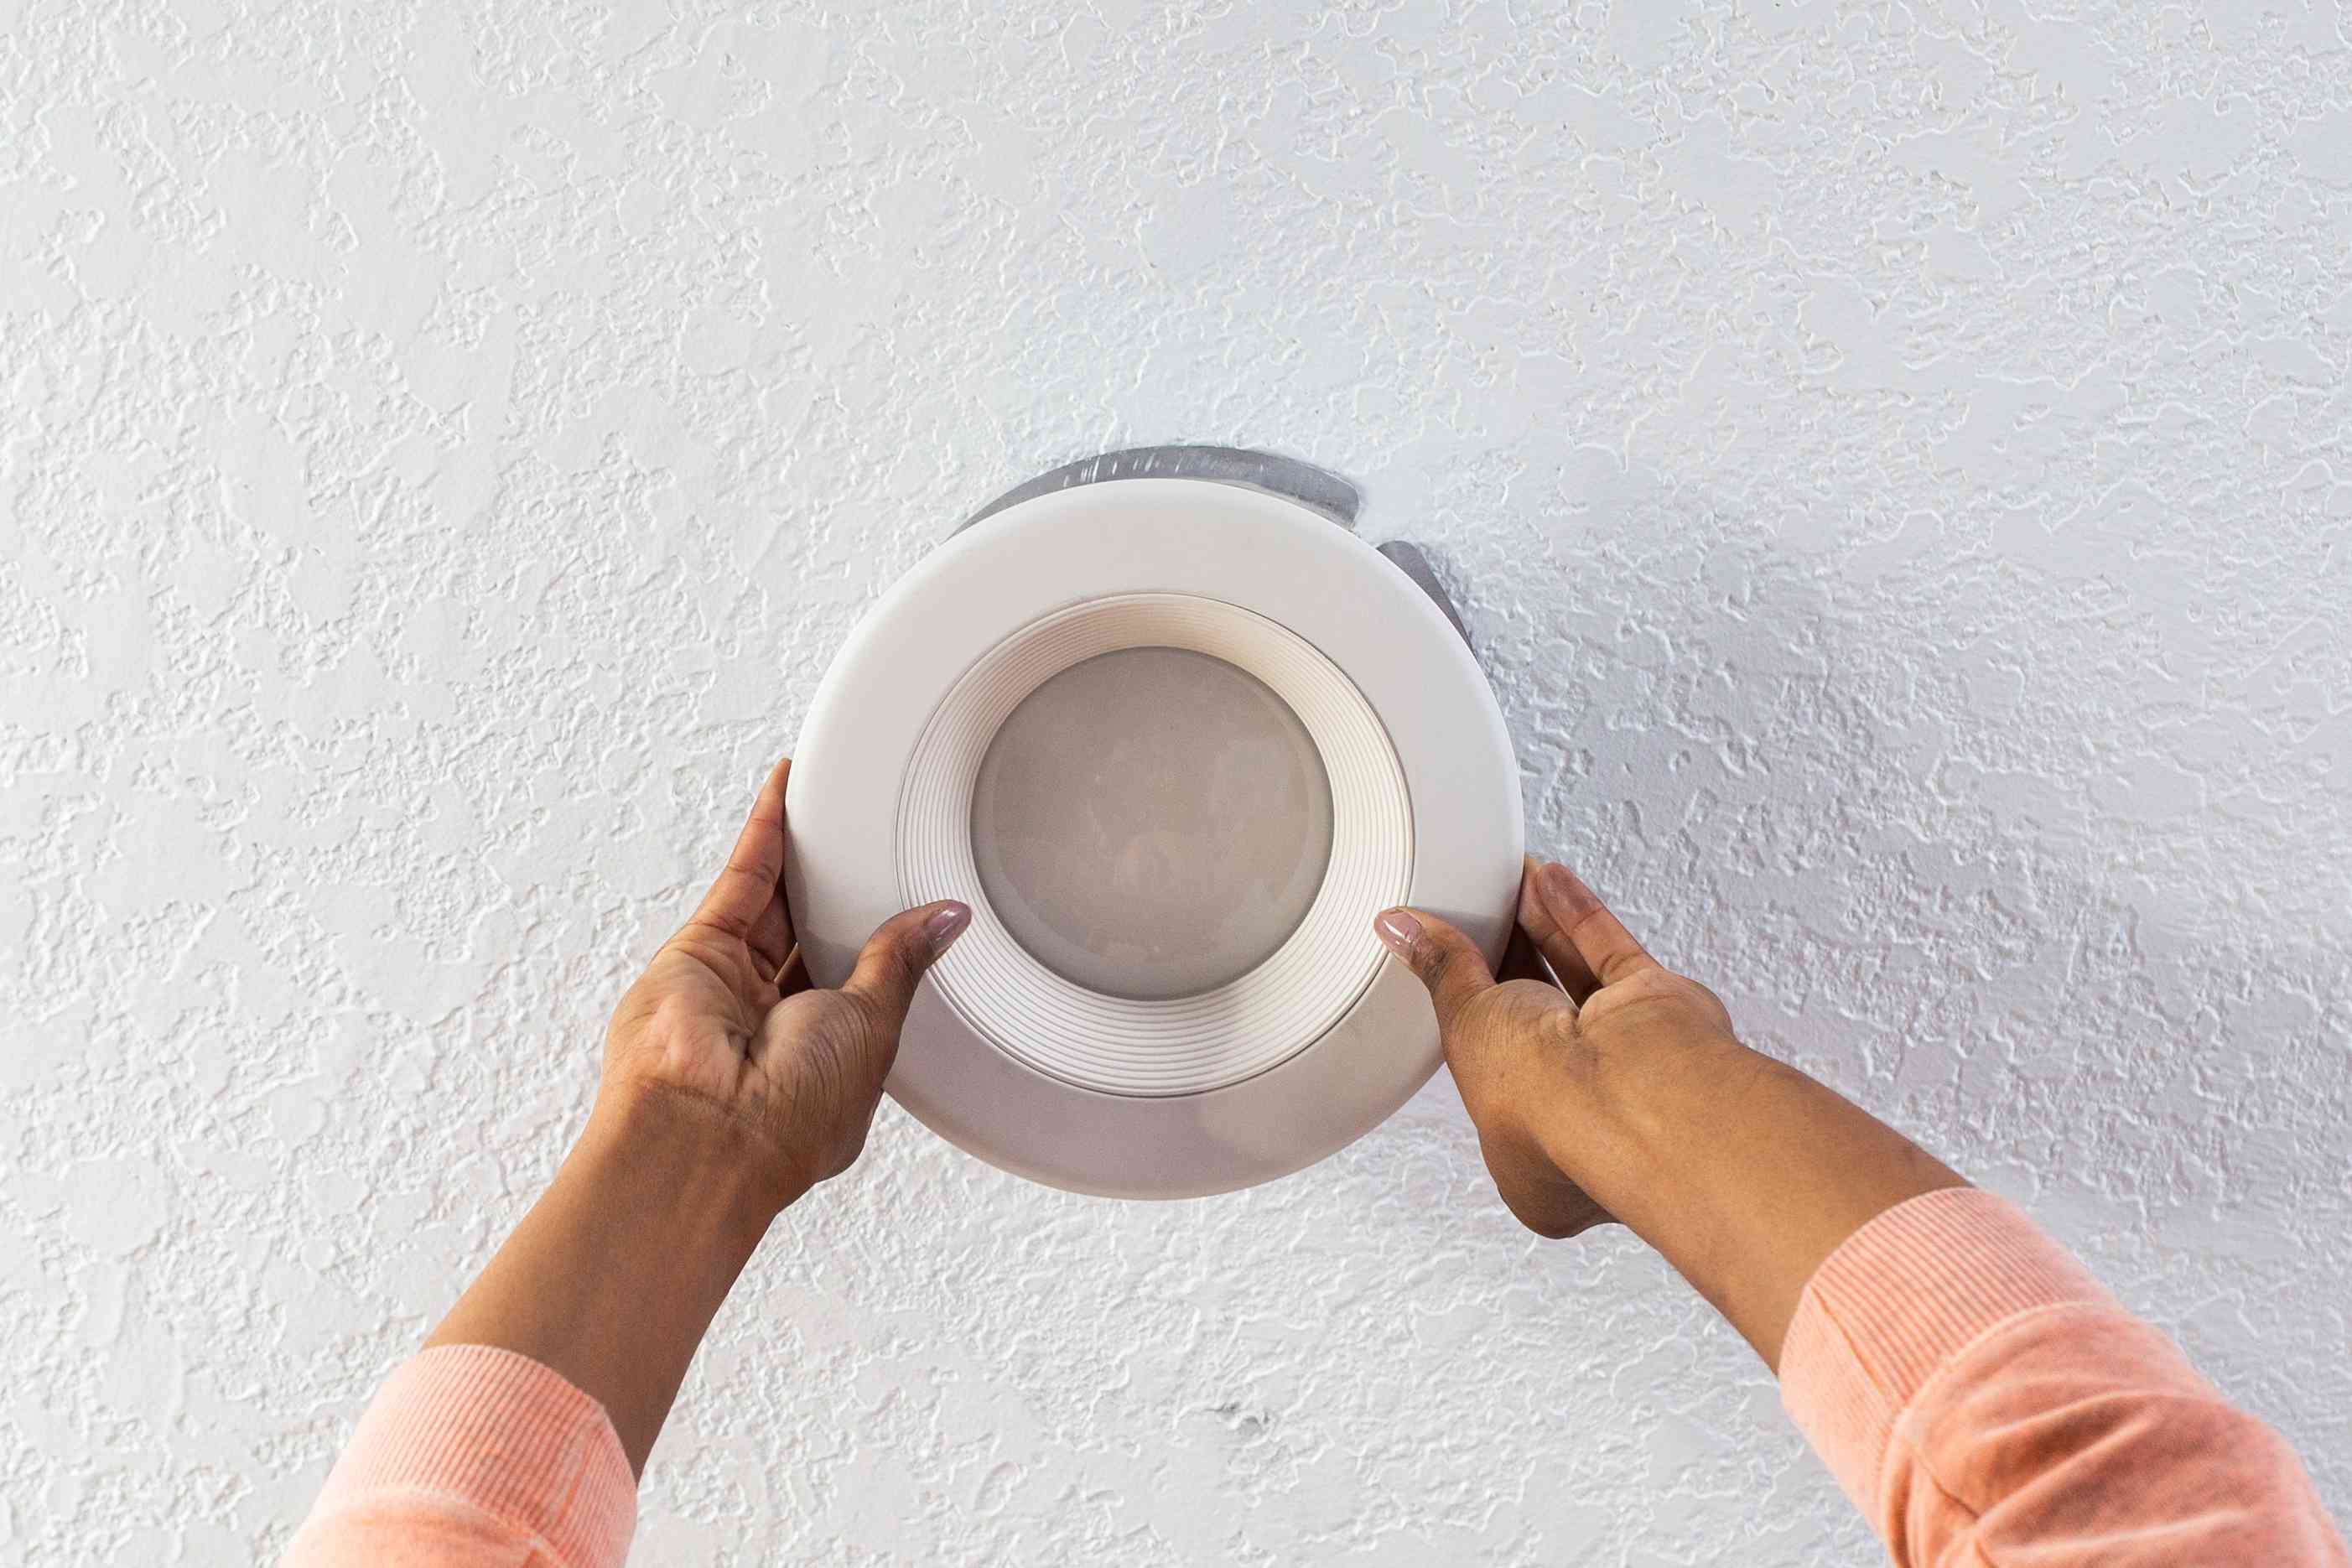 Recessed fixture installed into ceiling hole